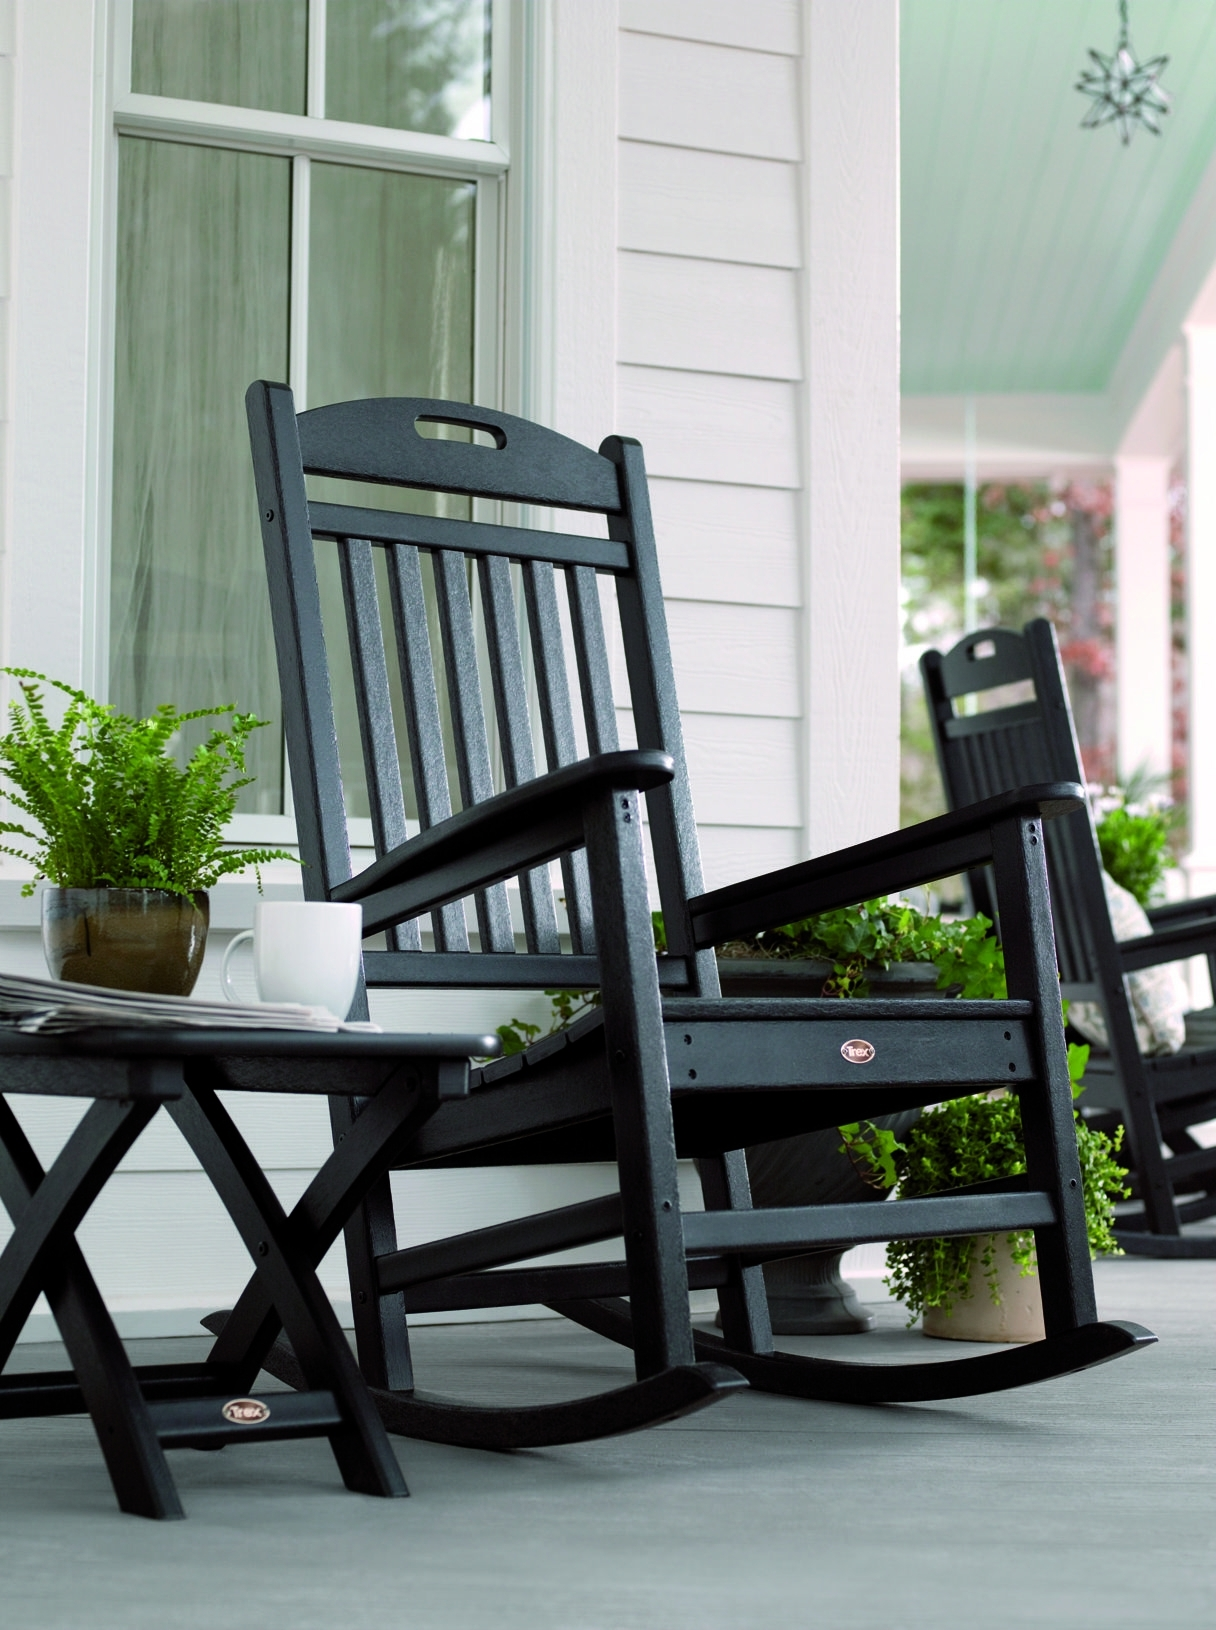 Patio Furniture Rocking Chair | Rocking Chairs | Outdoor Rocking Throughout Rocking Chairs For Porch (View 11 of 15)